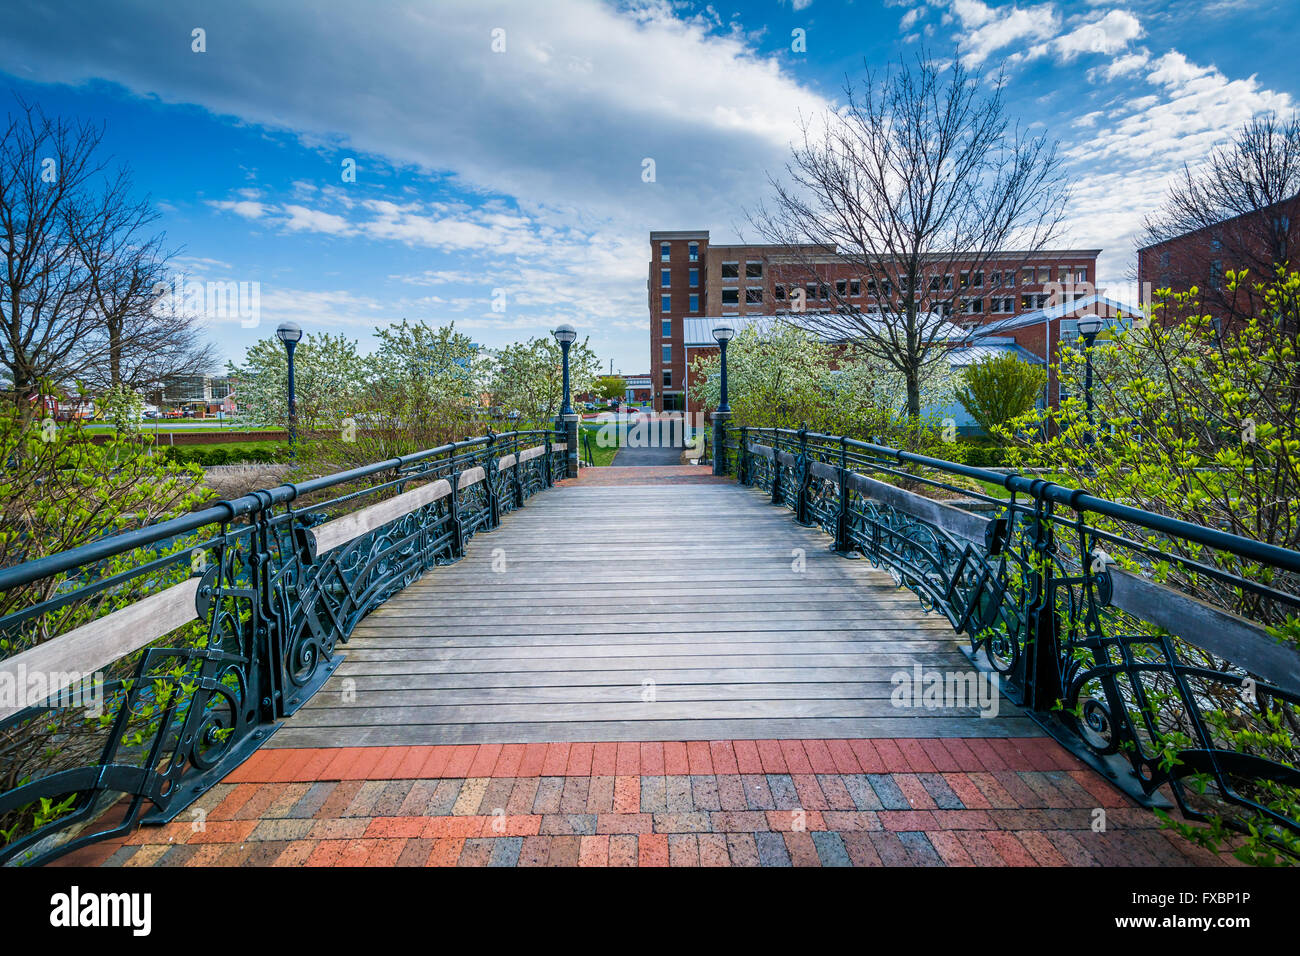 Bridge over Carroll Creek, in Frederick, Maryland. - Stock Image